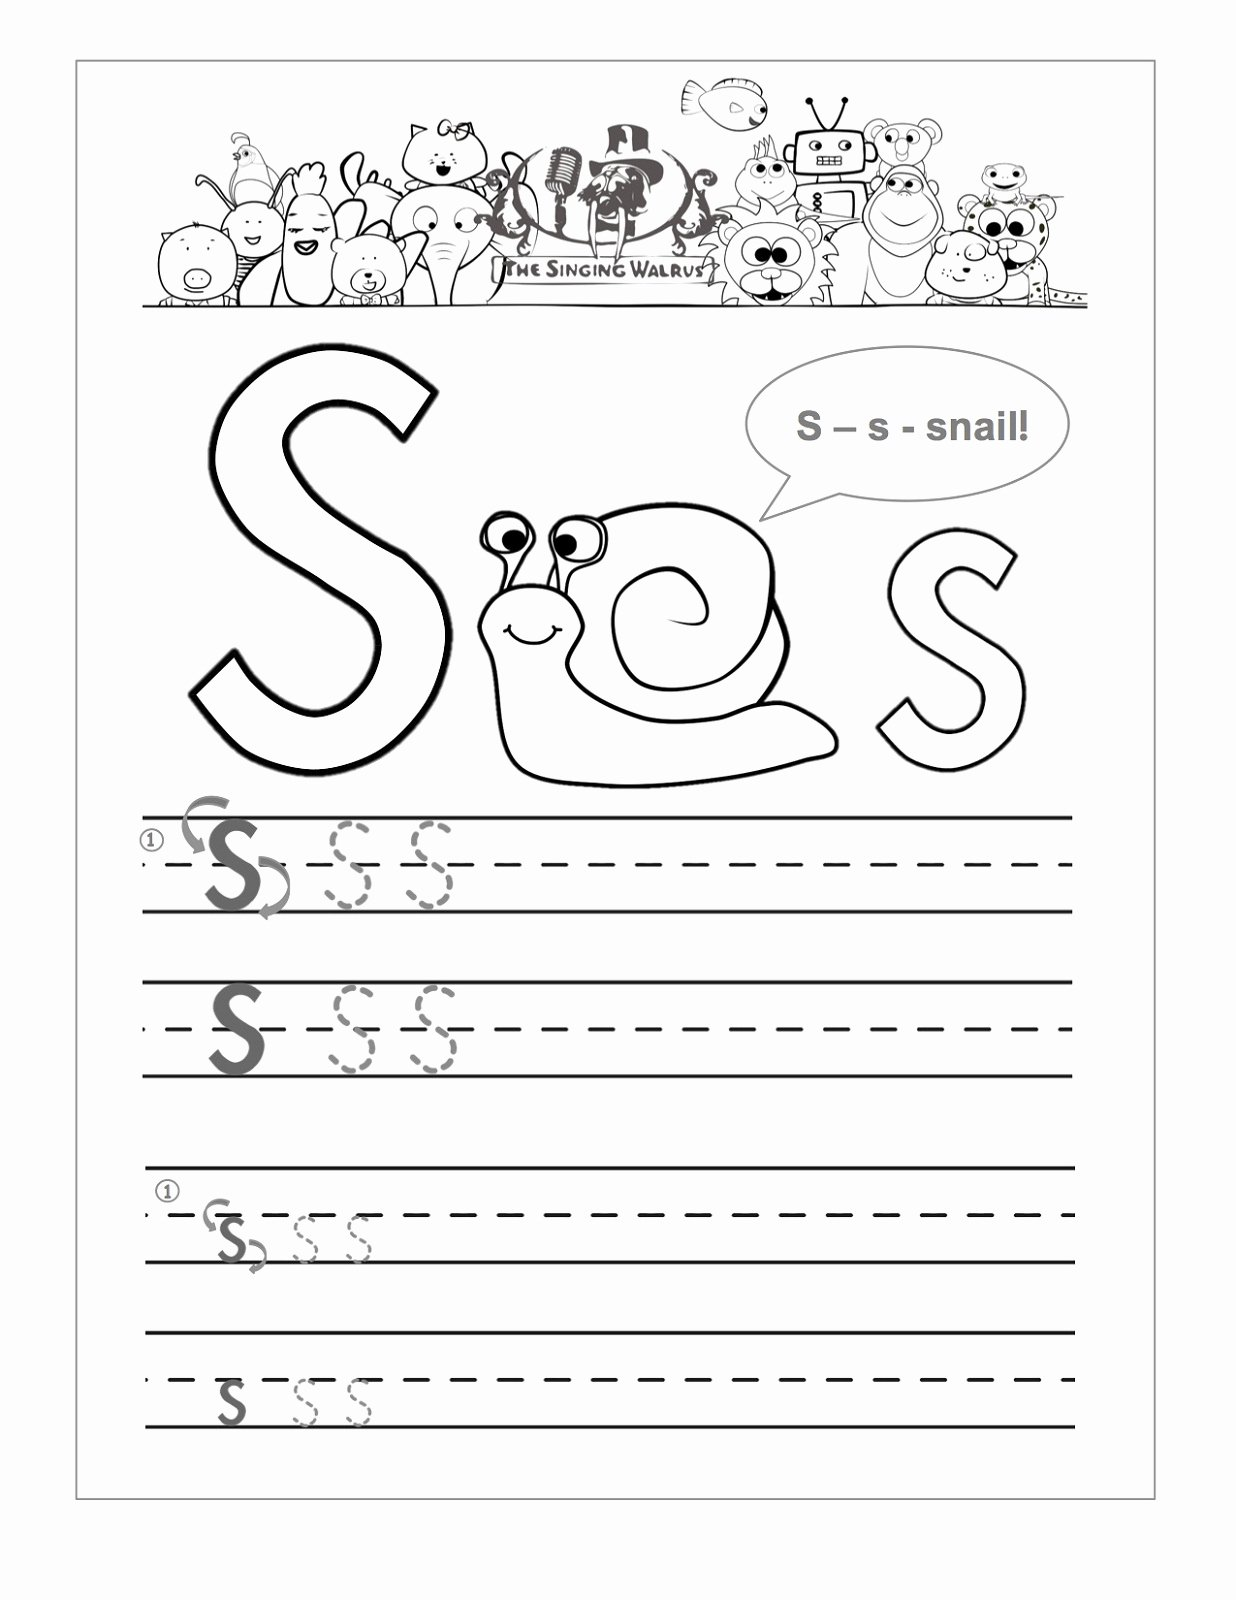 Letter S Worksheets for Preschoolers Fresh Letter S Worksheets Printable